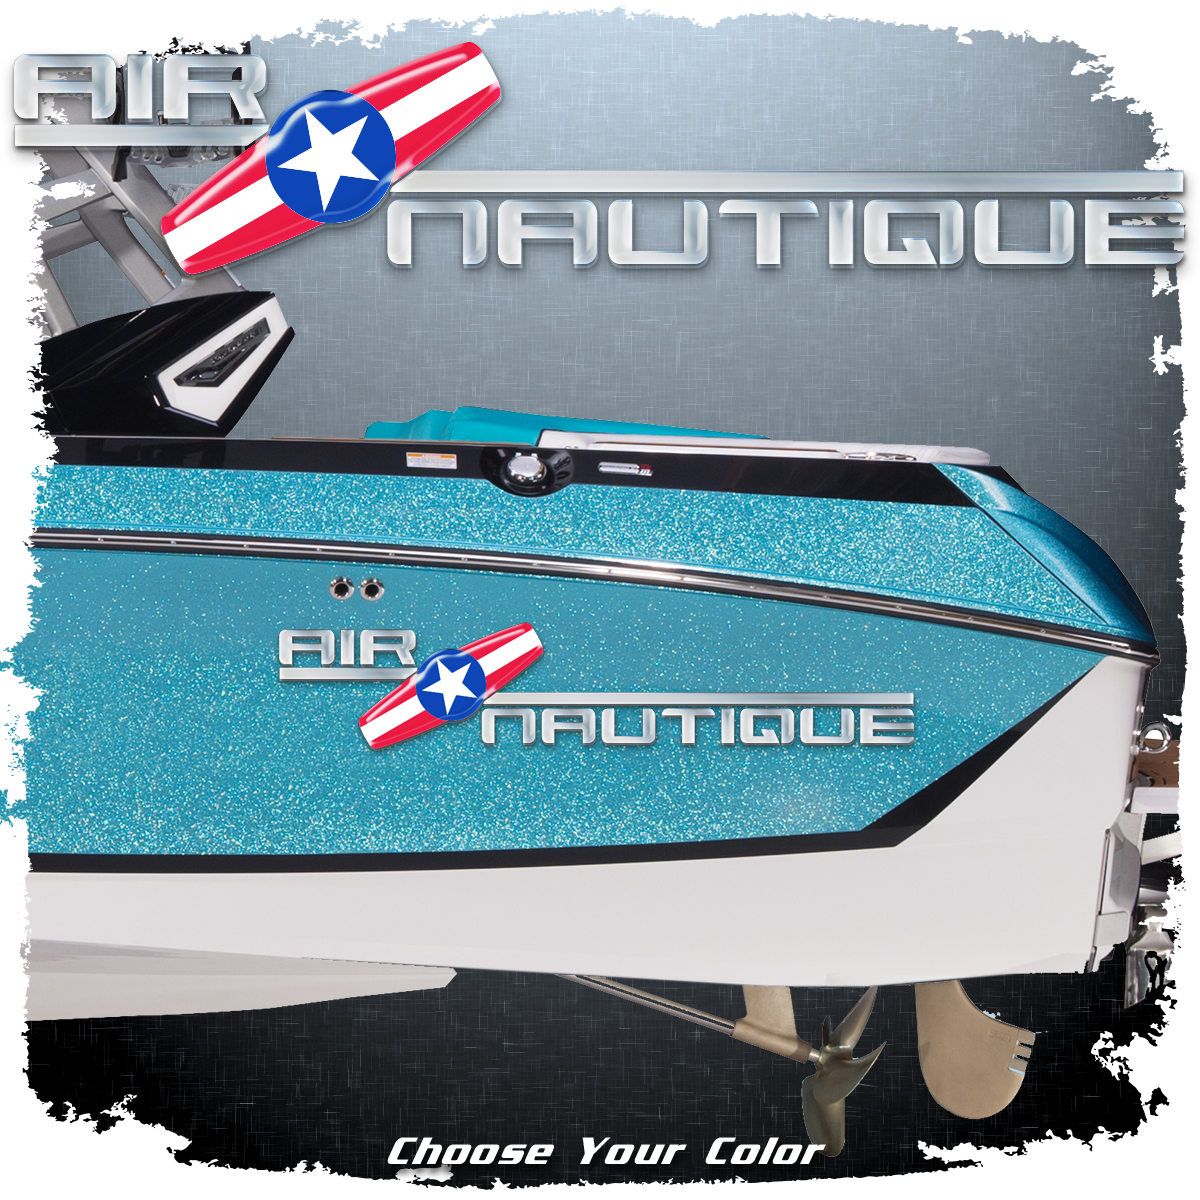 Domed 2000-05 Air Nautique Decal, Choose Your Color (1 included)